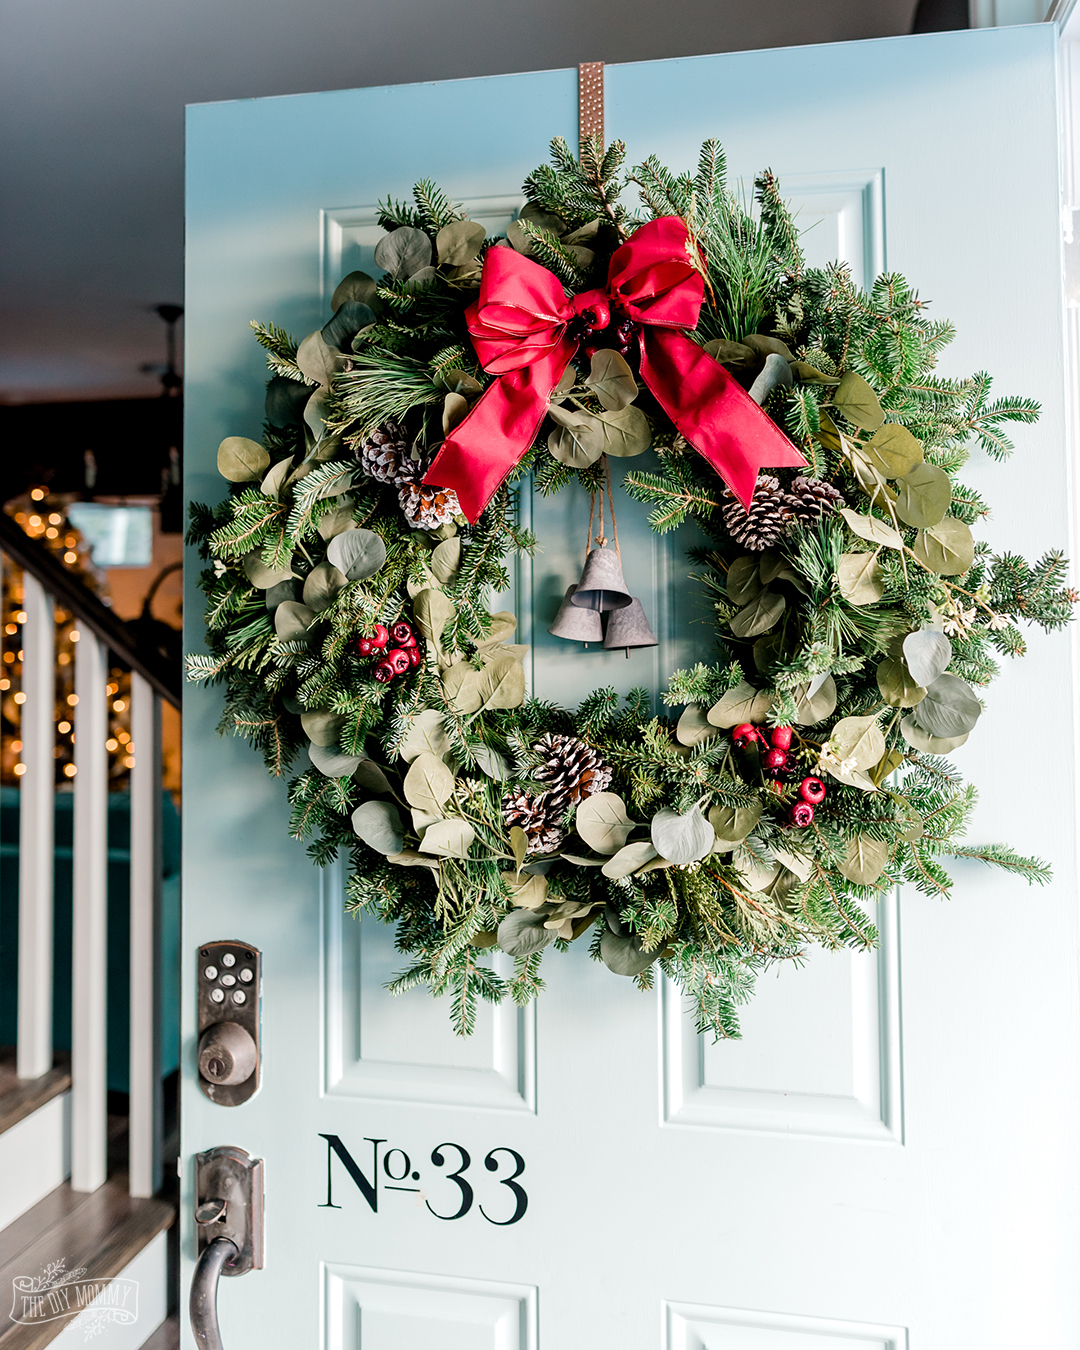 Learn how to put together a fresh greenery Christmas wreath that looks full and gorgeous with this easy wreath hack!